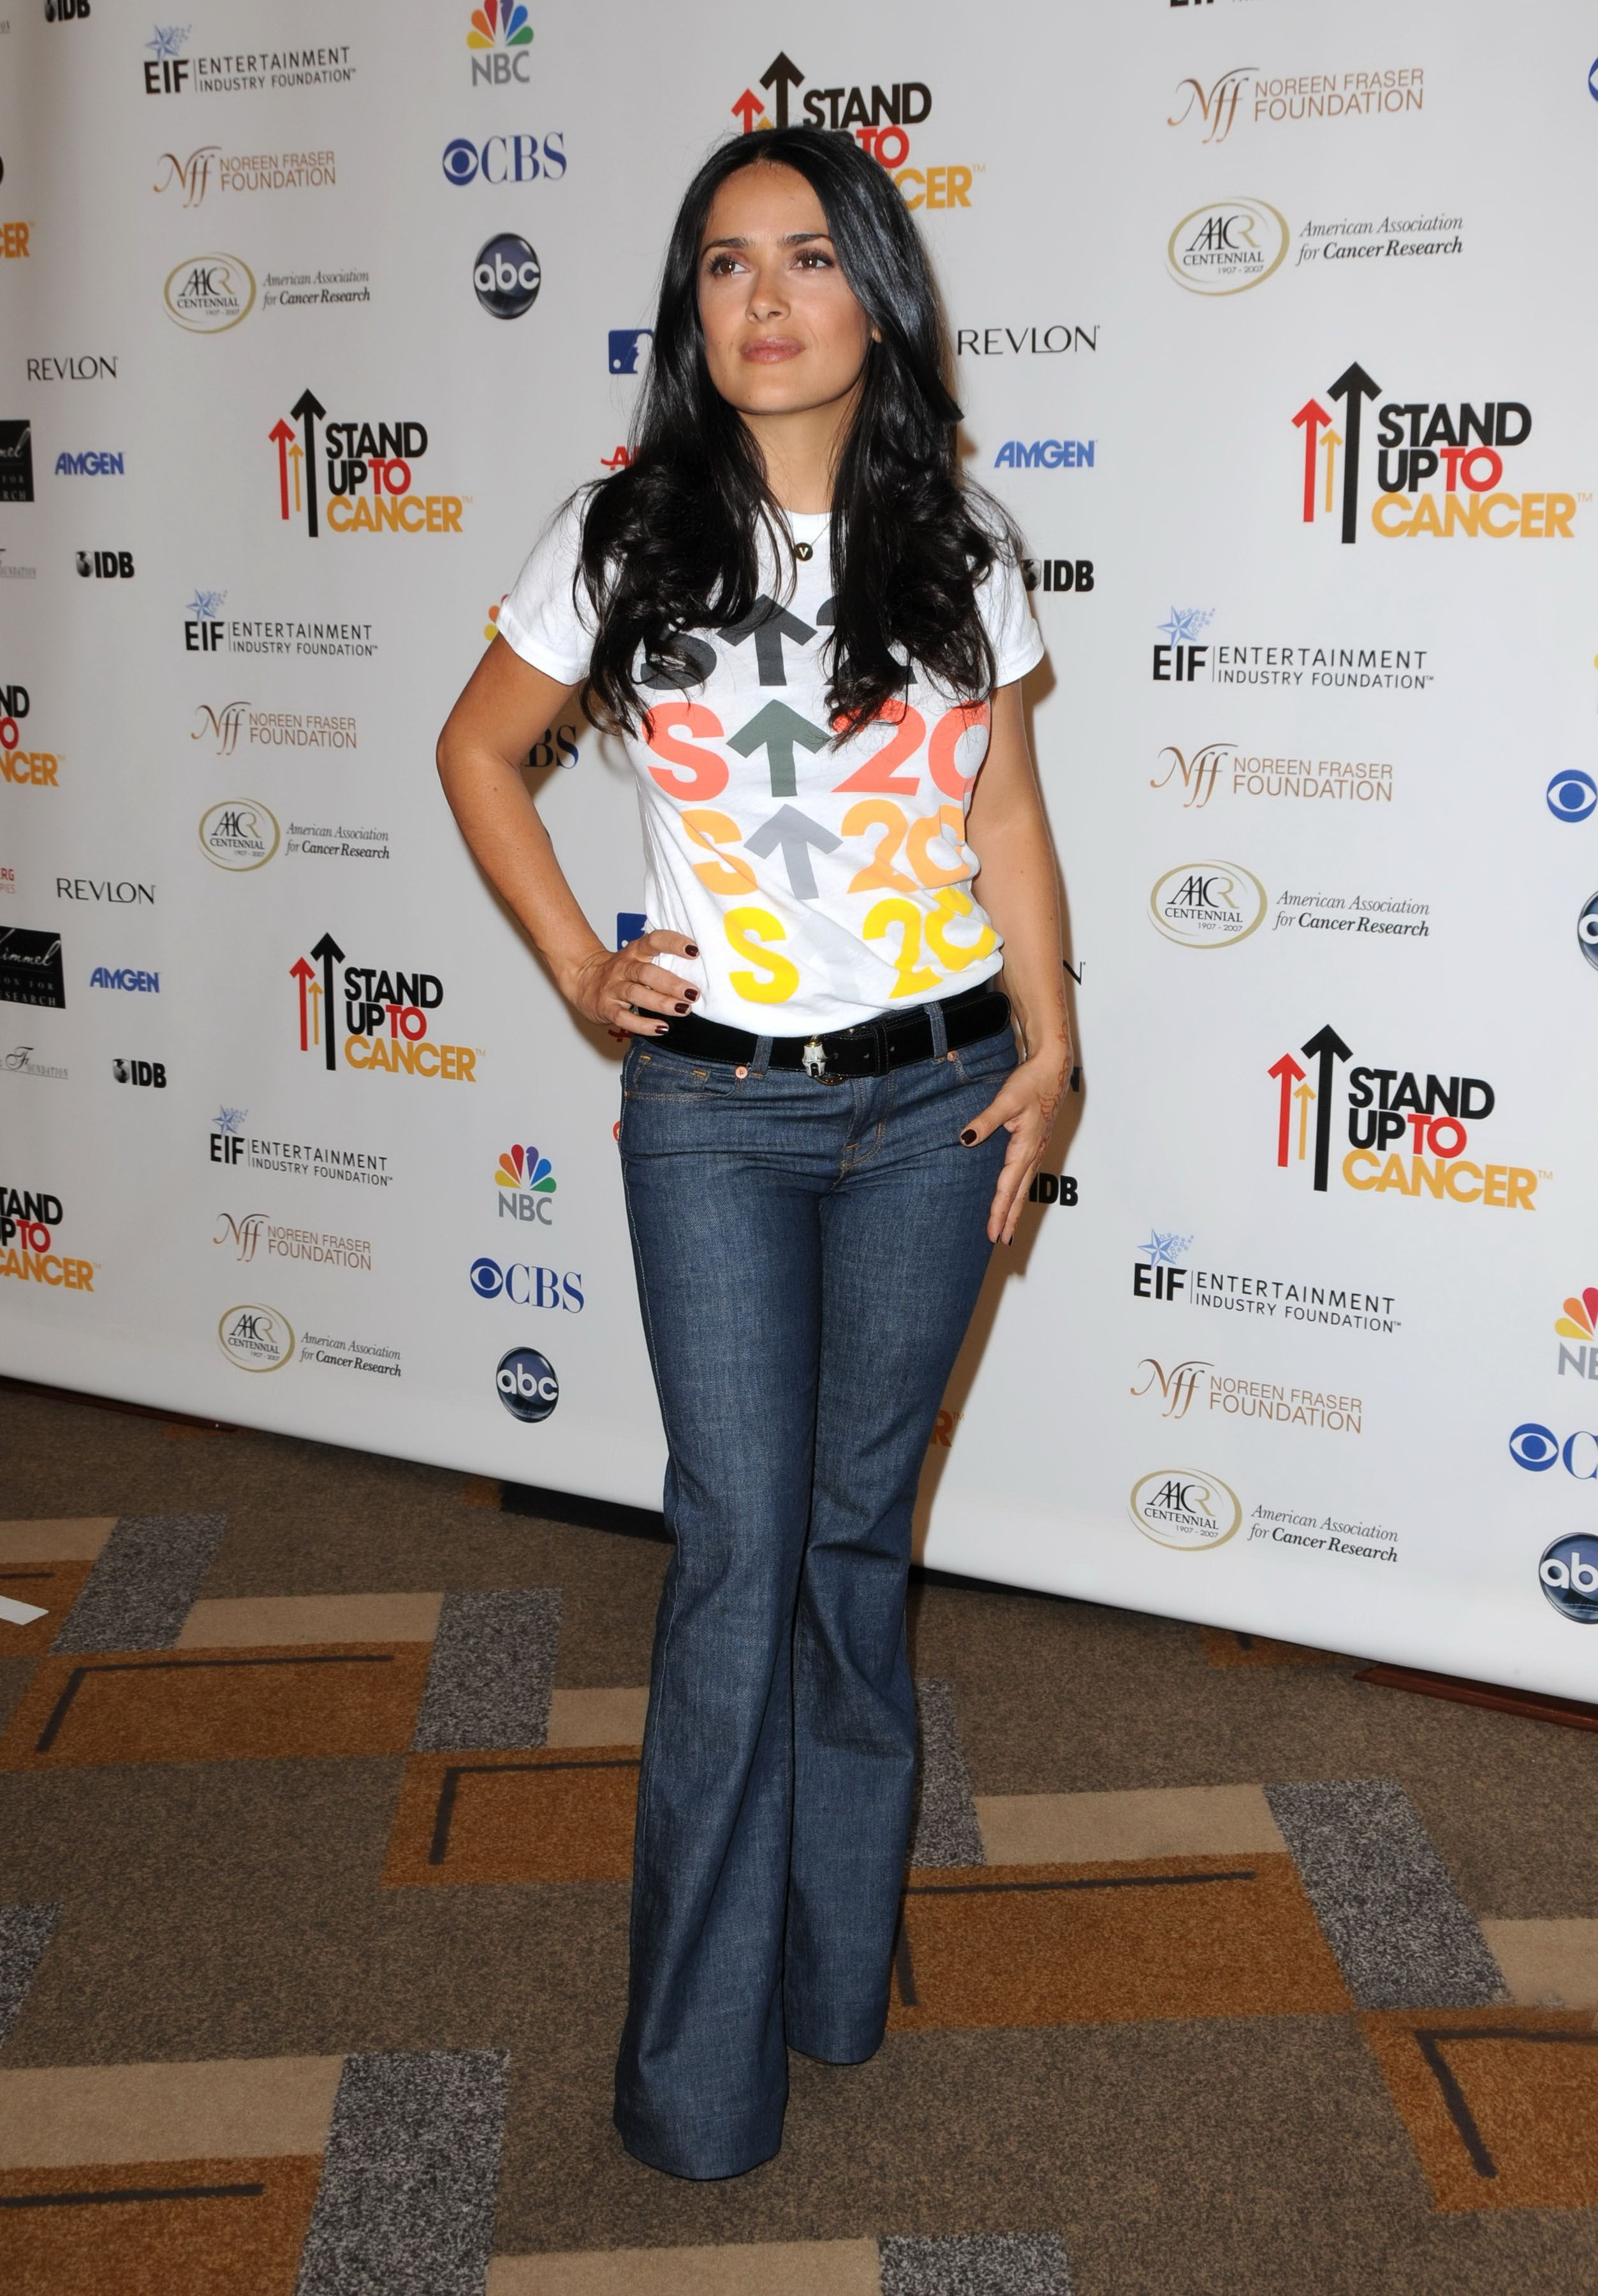 6b0127379d8 Salma Hayek - Stand Up To Cancer - Arrivals